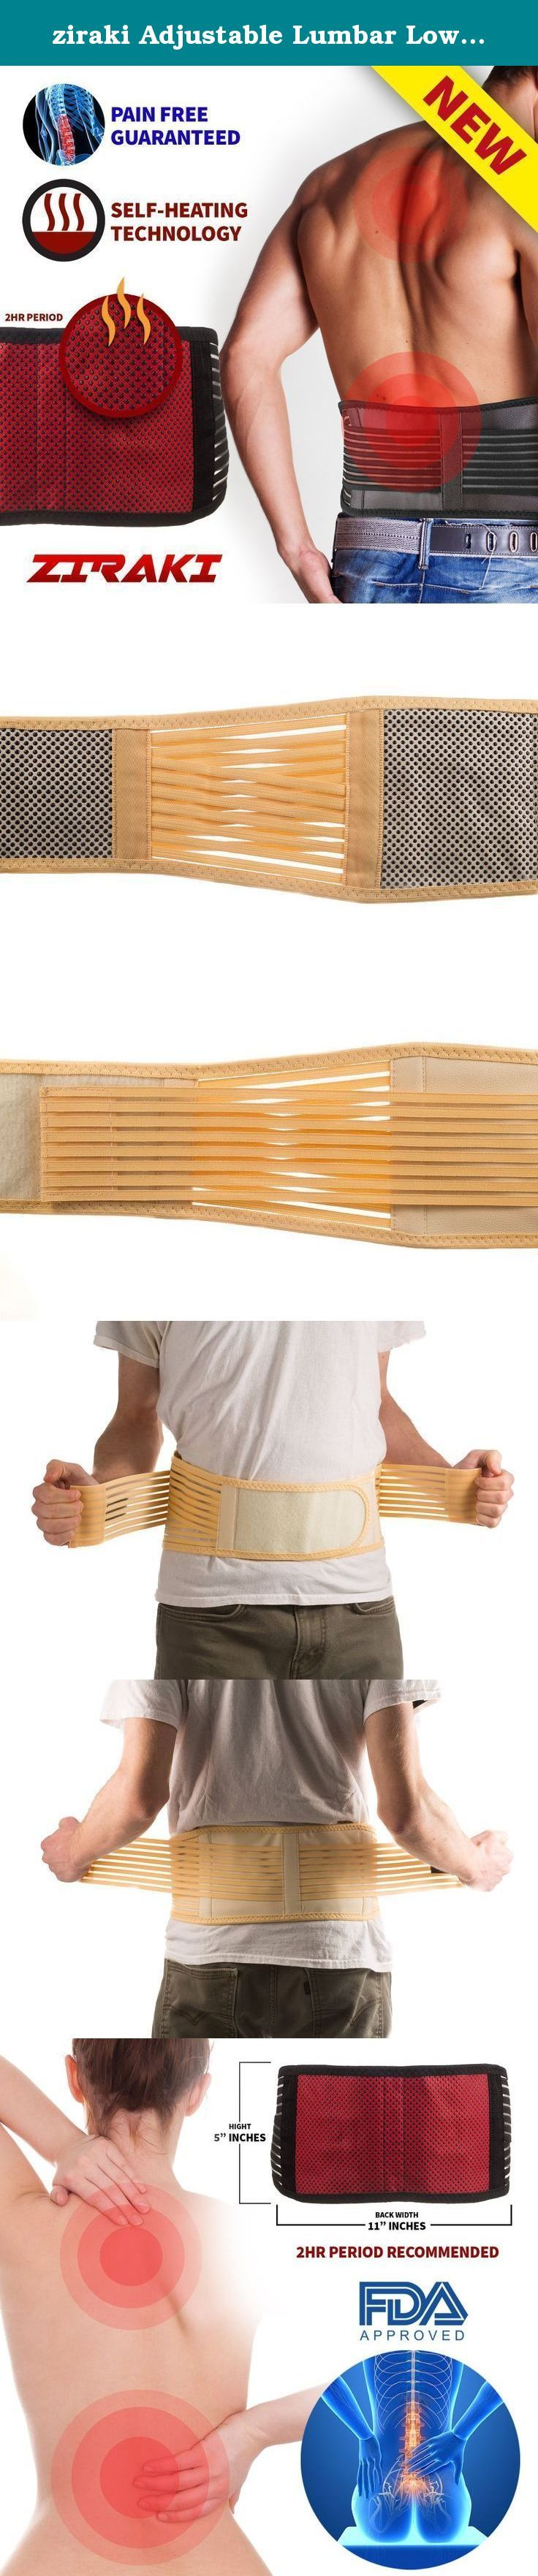 """ziraki Adjustable Lumbar Lower Back Support Brace, 3X-Large/40-46"""", Beige. The number of people who suffer from lumbar pain keeps on increasing over the years! It is the pain you feel from lower back and extends to your legs. There are a variety of reasons why people get this sickness • Strain muscles • Obesity • Pregnancy • Bending • Repetitive stooping • Smoking • Spinal problems It is one of the causes for many workers availing of sick leaves for days. Lumbar back pain is a sickness…"""